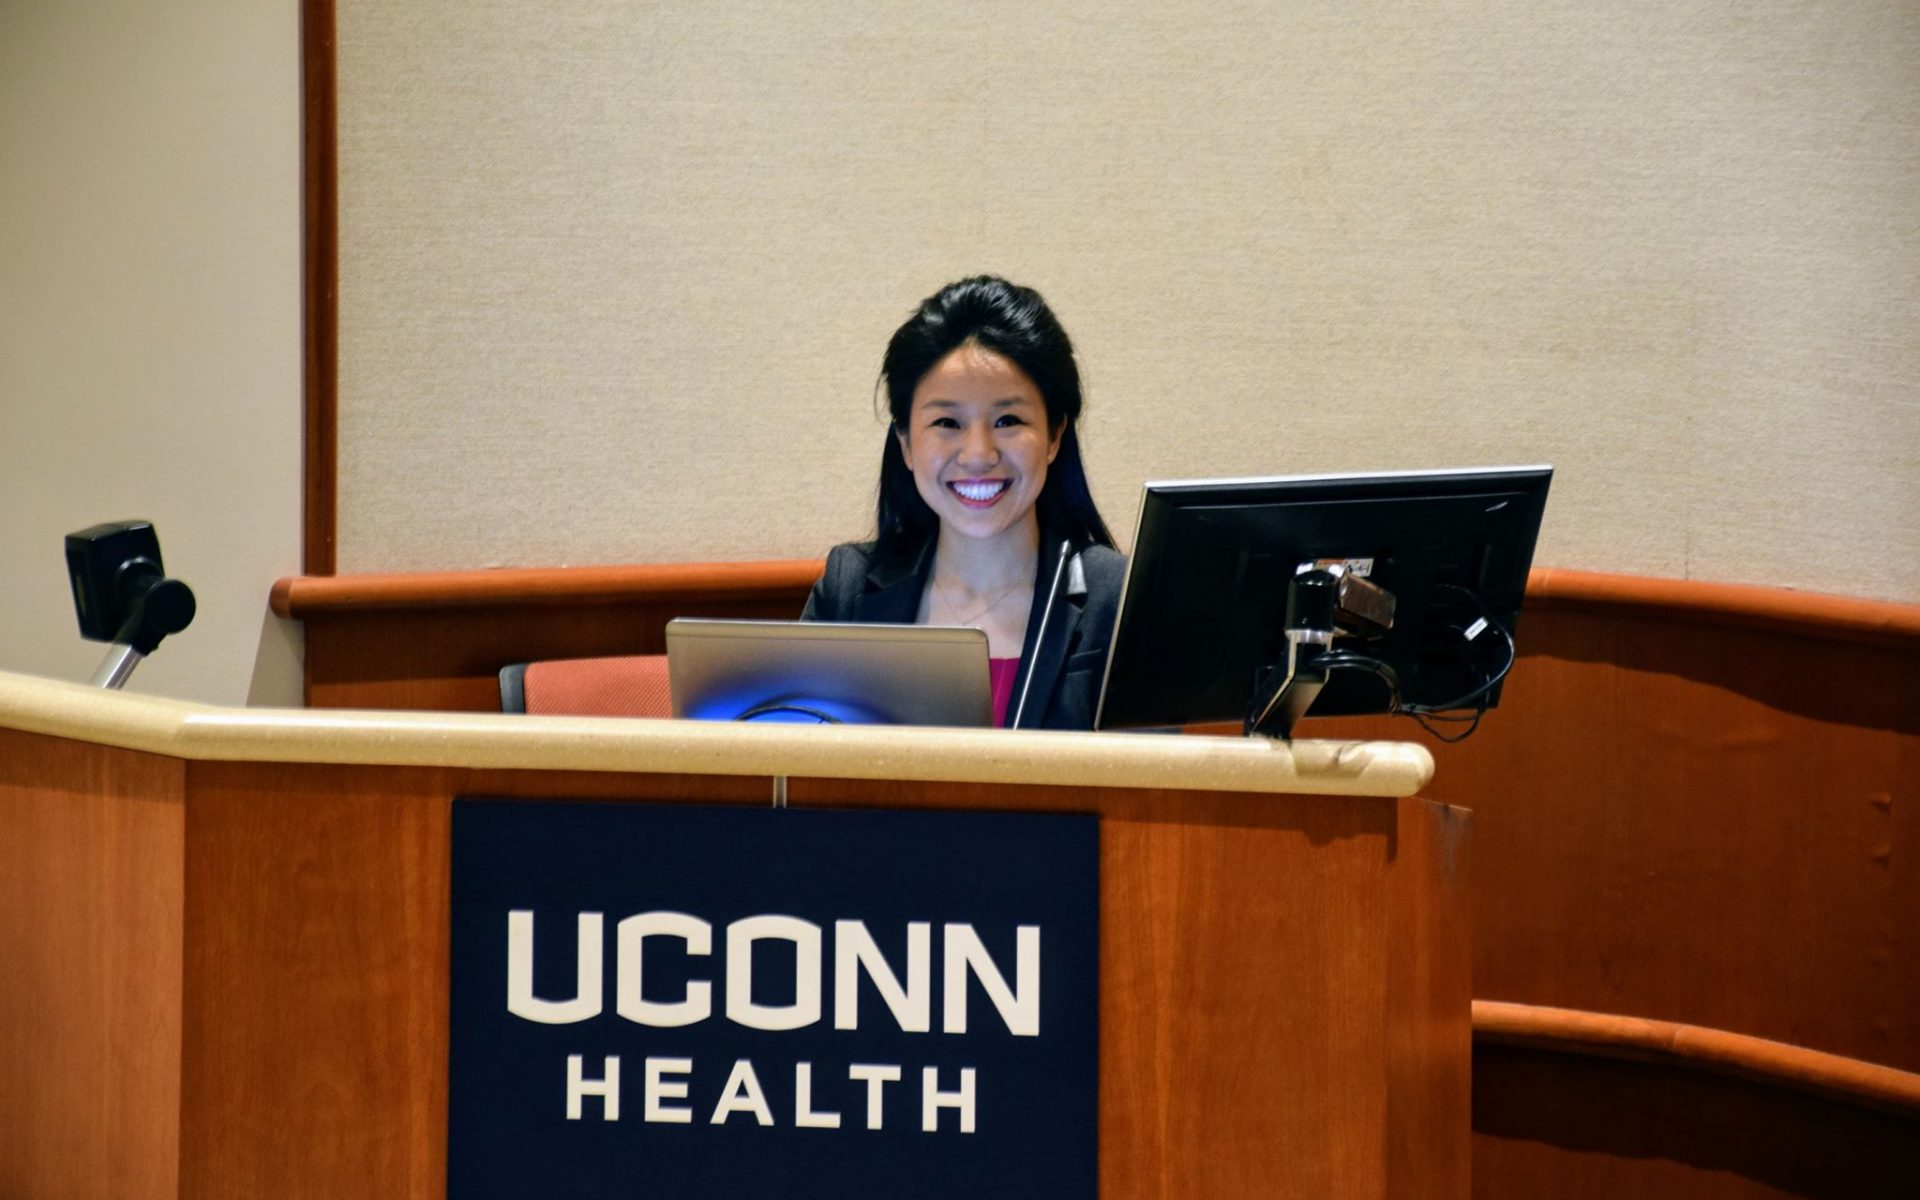 Maria Smiling at the Low Learning Center Podium